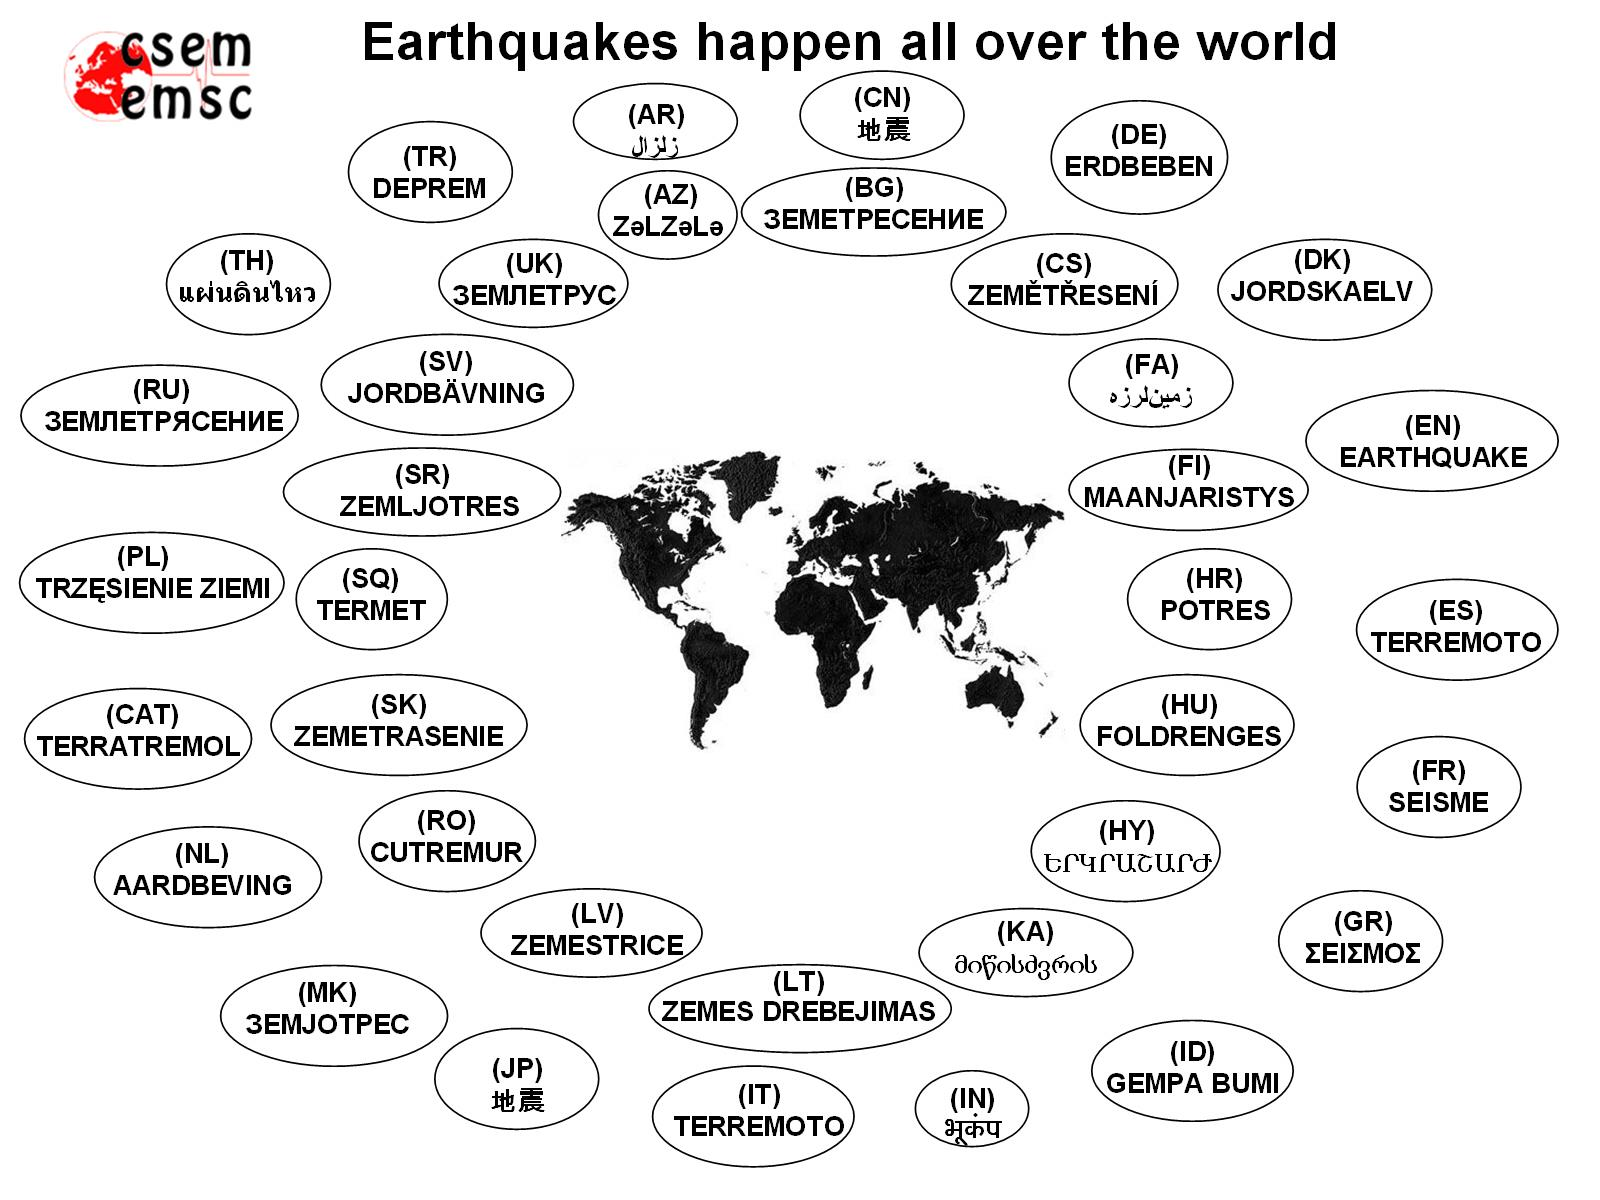 word earthquake in all languages